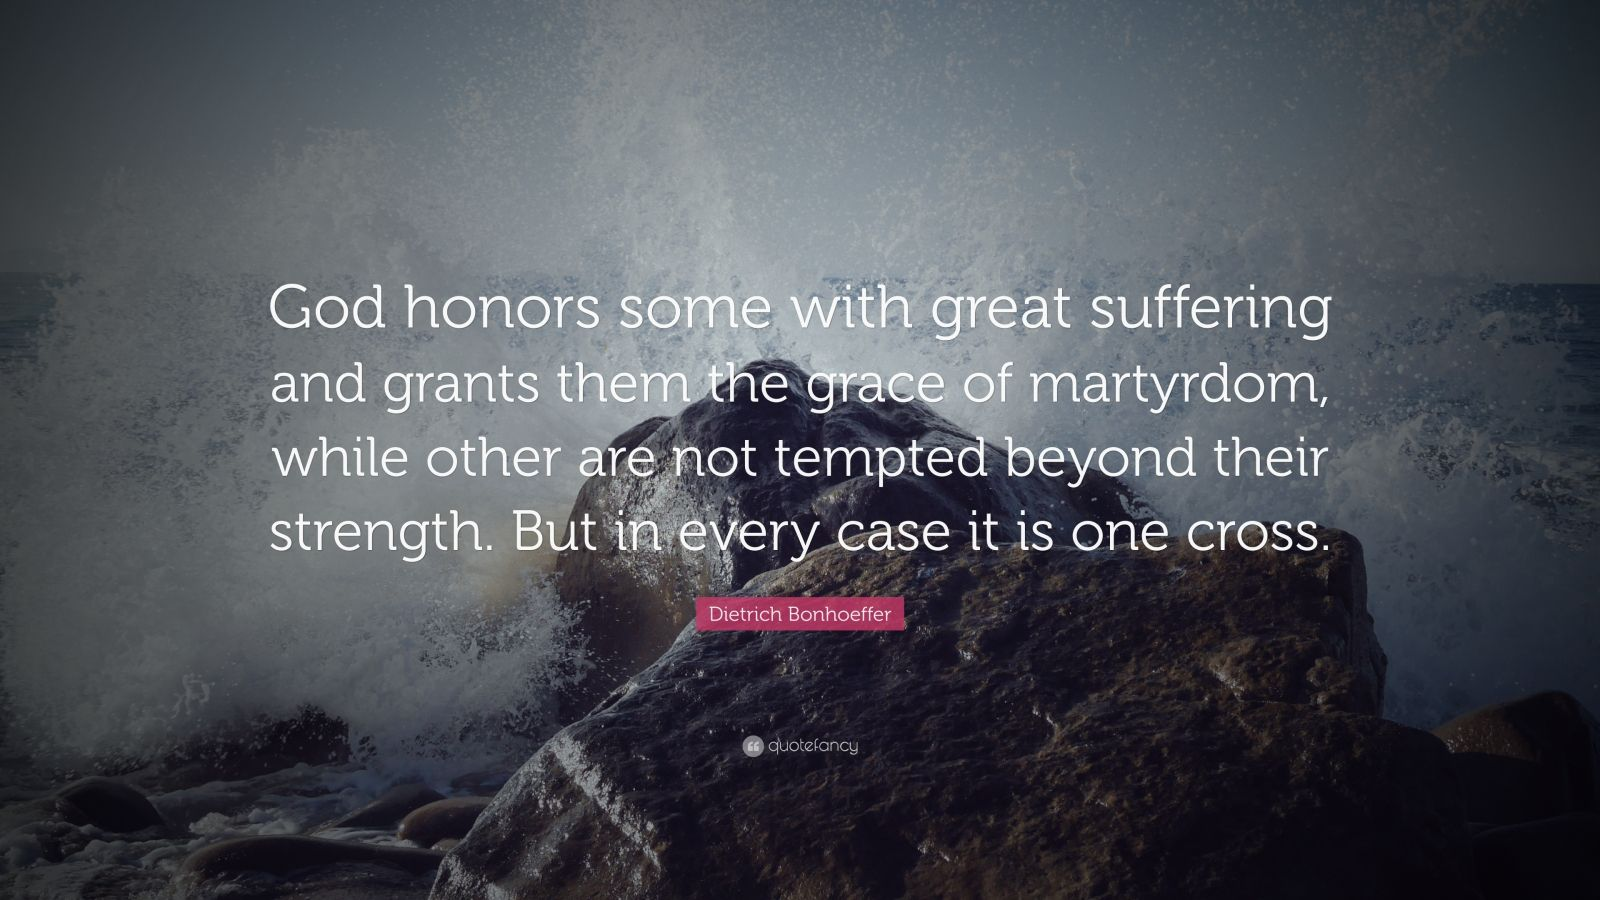 """Dietrich Bonhoeffer Quote: """"God honors some with great suffering and grants them the grace of martyrdom, while other are not tempted beyond their strength. But in every case it is one cross."""""""